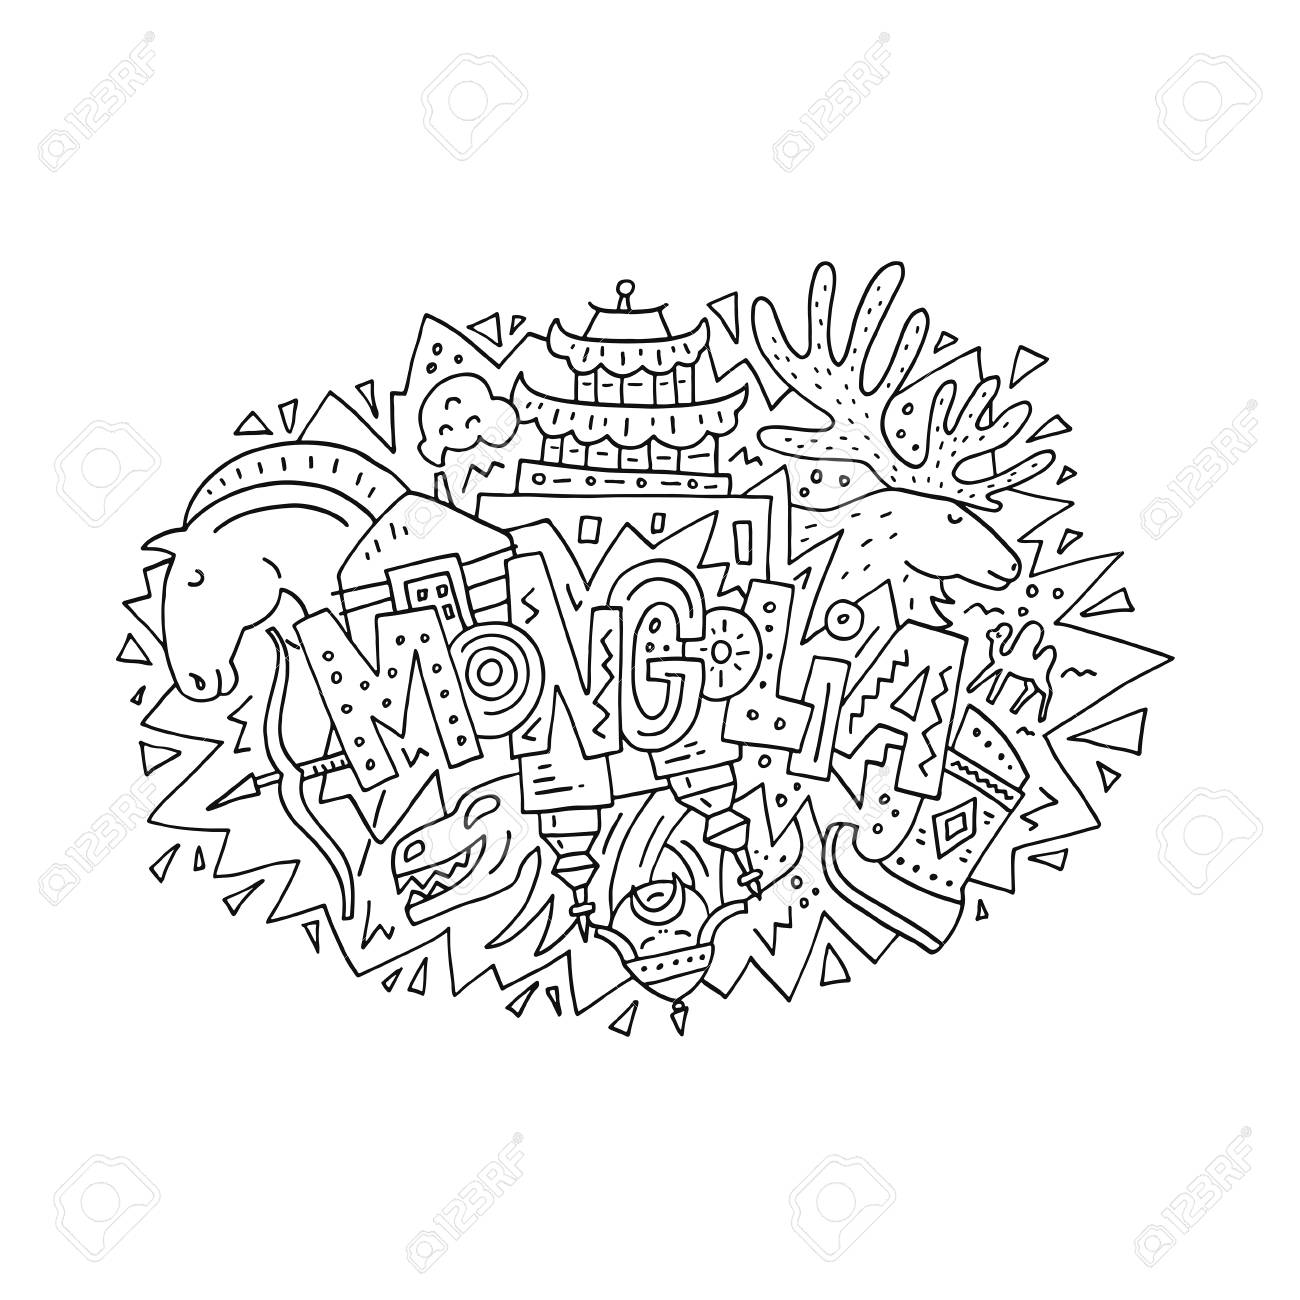 vector illustration of mongolia with symbols of the country royalty Namibia Country vector vector illustration of mongolia with symbols of the country